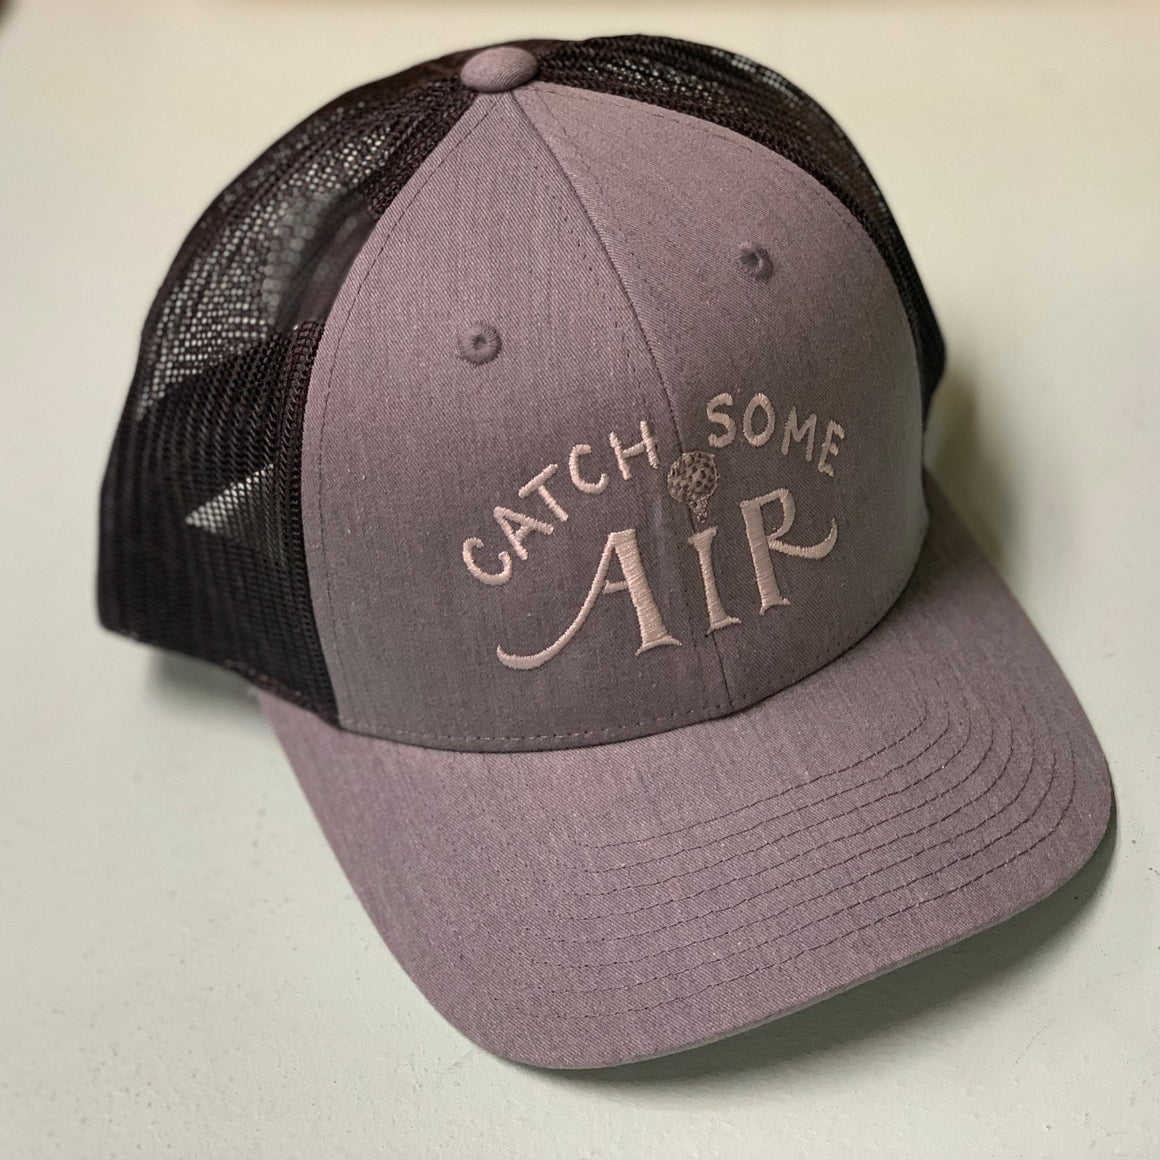 """CATCH SOME AIR"" low profile snapback hat"